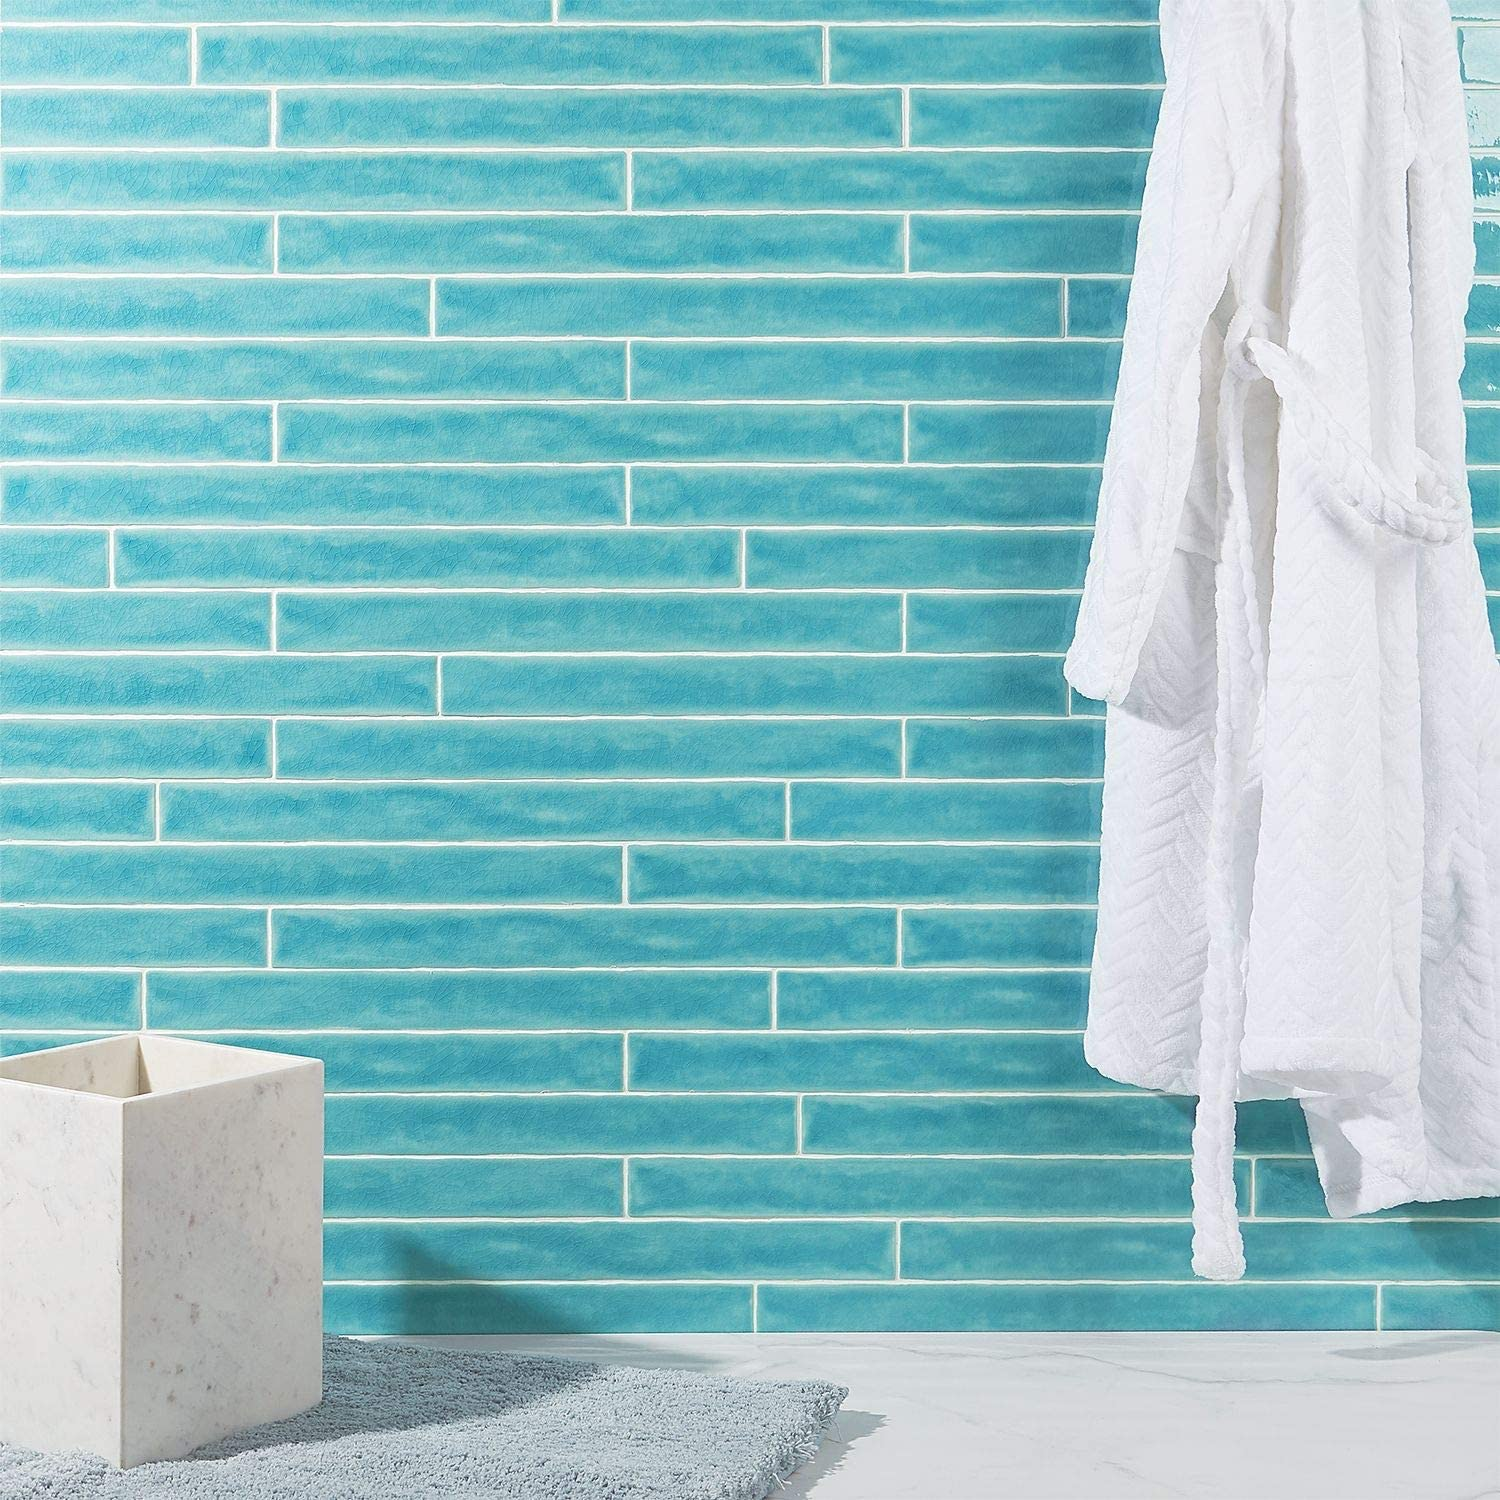 Polished Ceramic Wall Tile 20 Pieces 5.38 Sq. Ft. // Case Nantucket Blue 2 in x 20 in